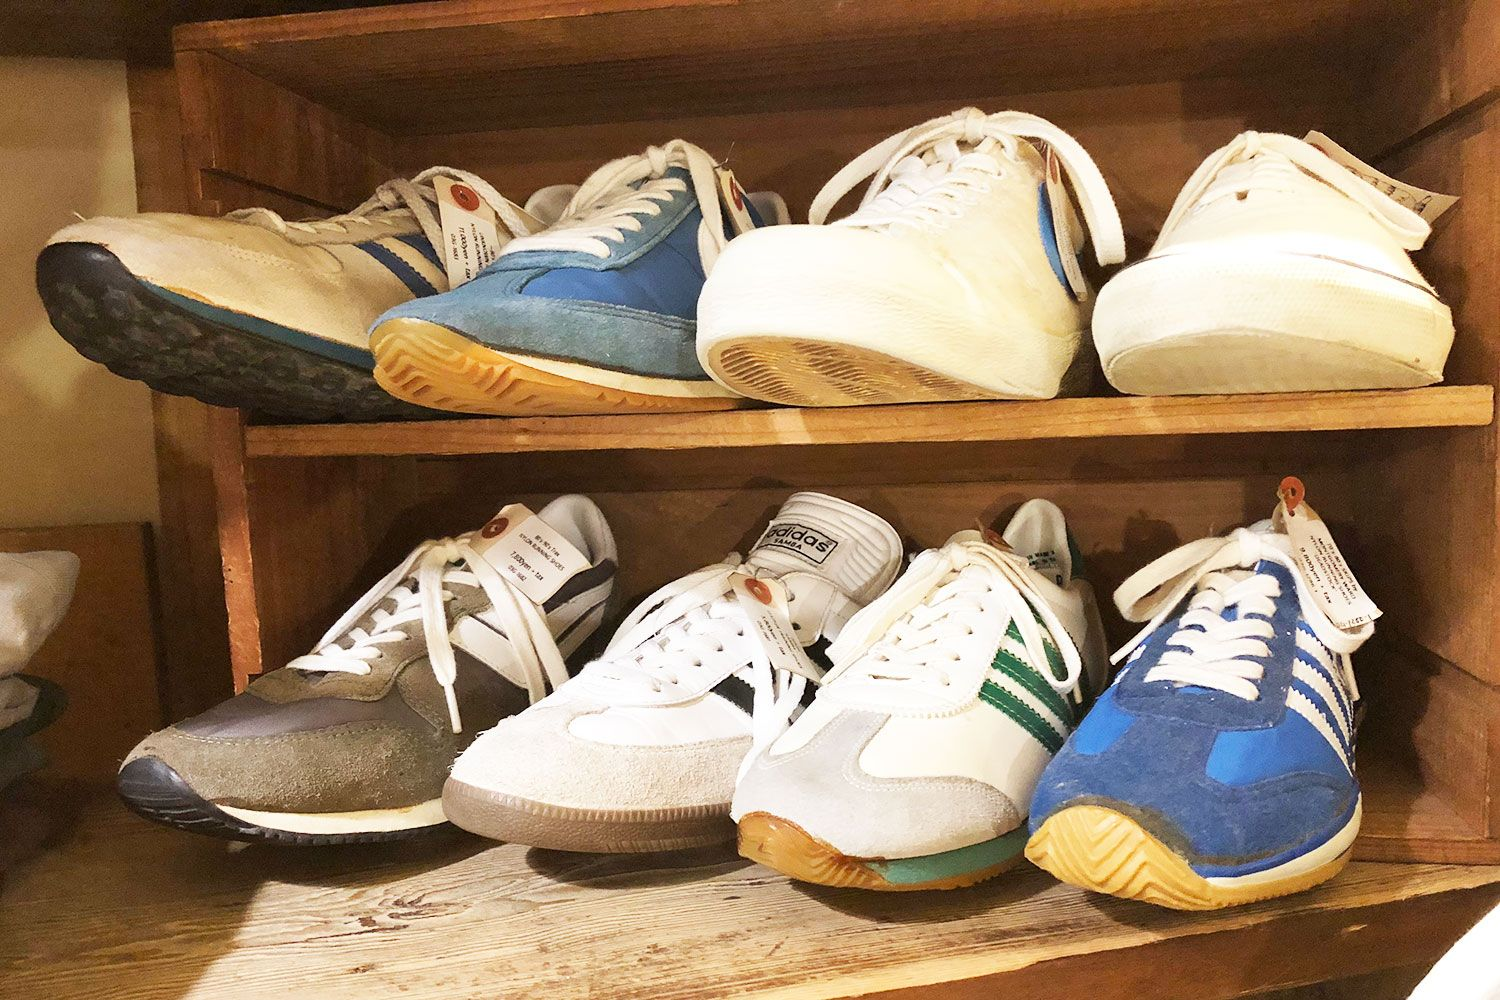 Vintage sneaker shopping guide to Tokyo